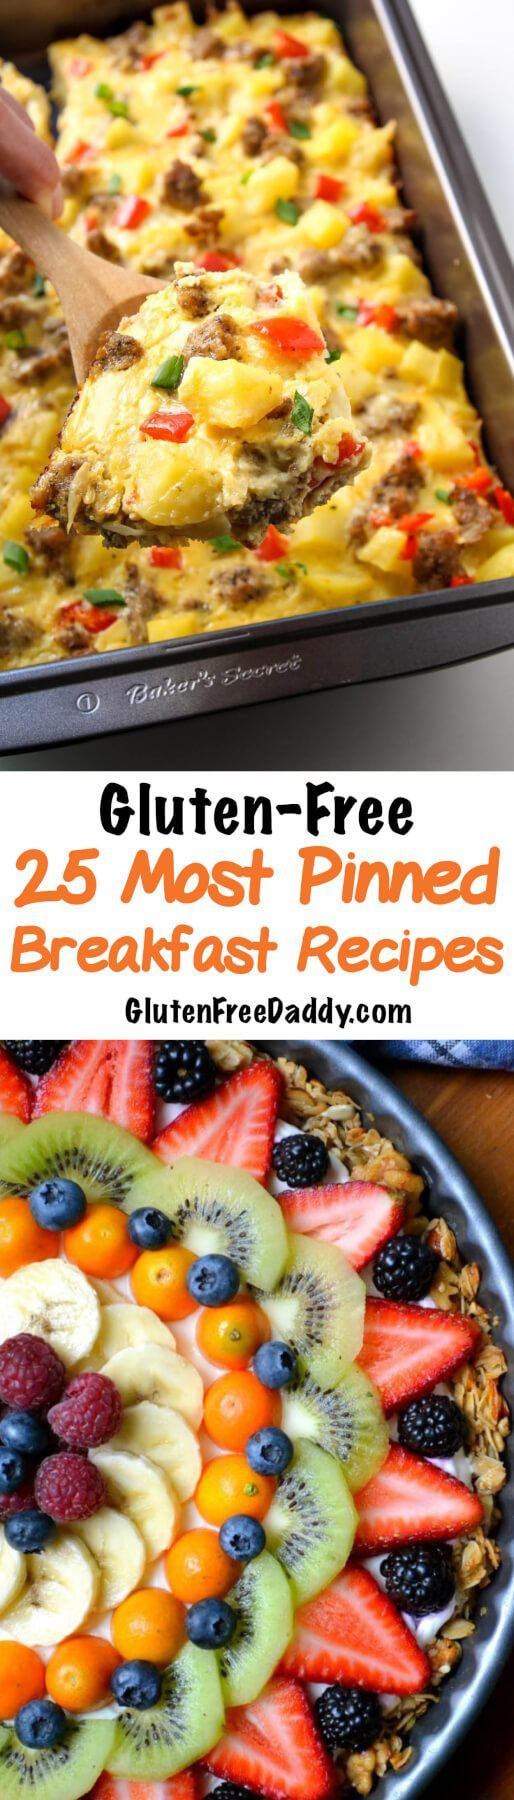 25 Most Pinned Gluten-Free Breakfast Recipes                                                                                                                                                                                 More